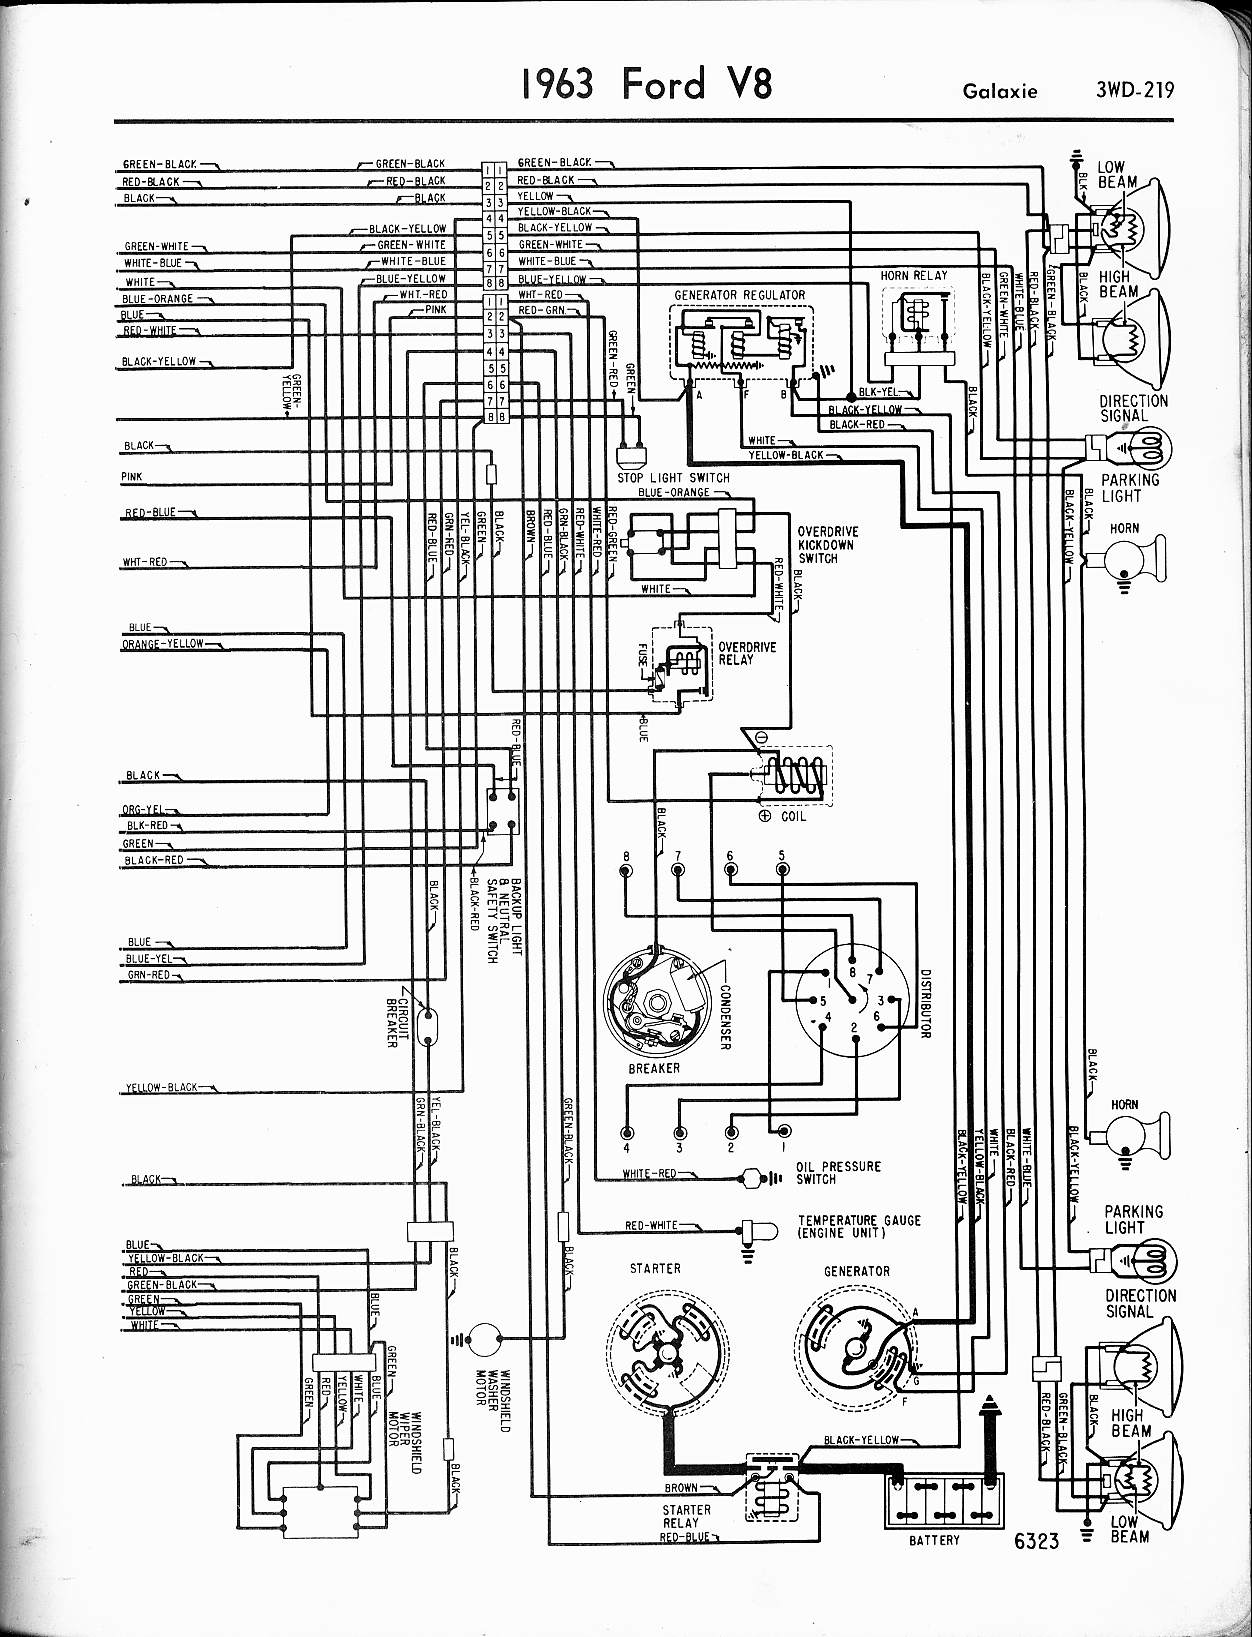 MWire5765 219 wiring schematic 1963 ford muscle forums ford muscle cars tech 1971 ford torino ignition wiring diagram at bayanpartner.co